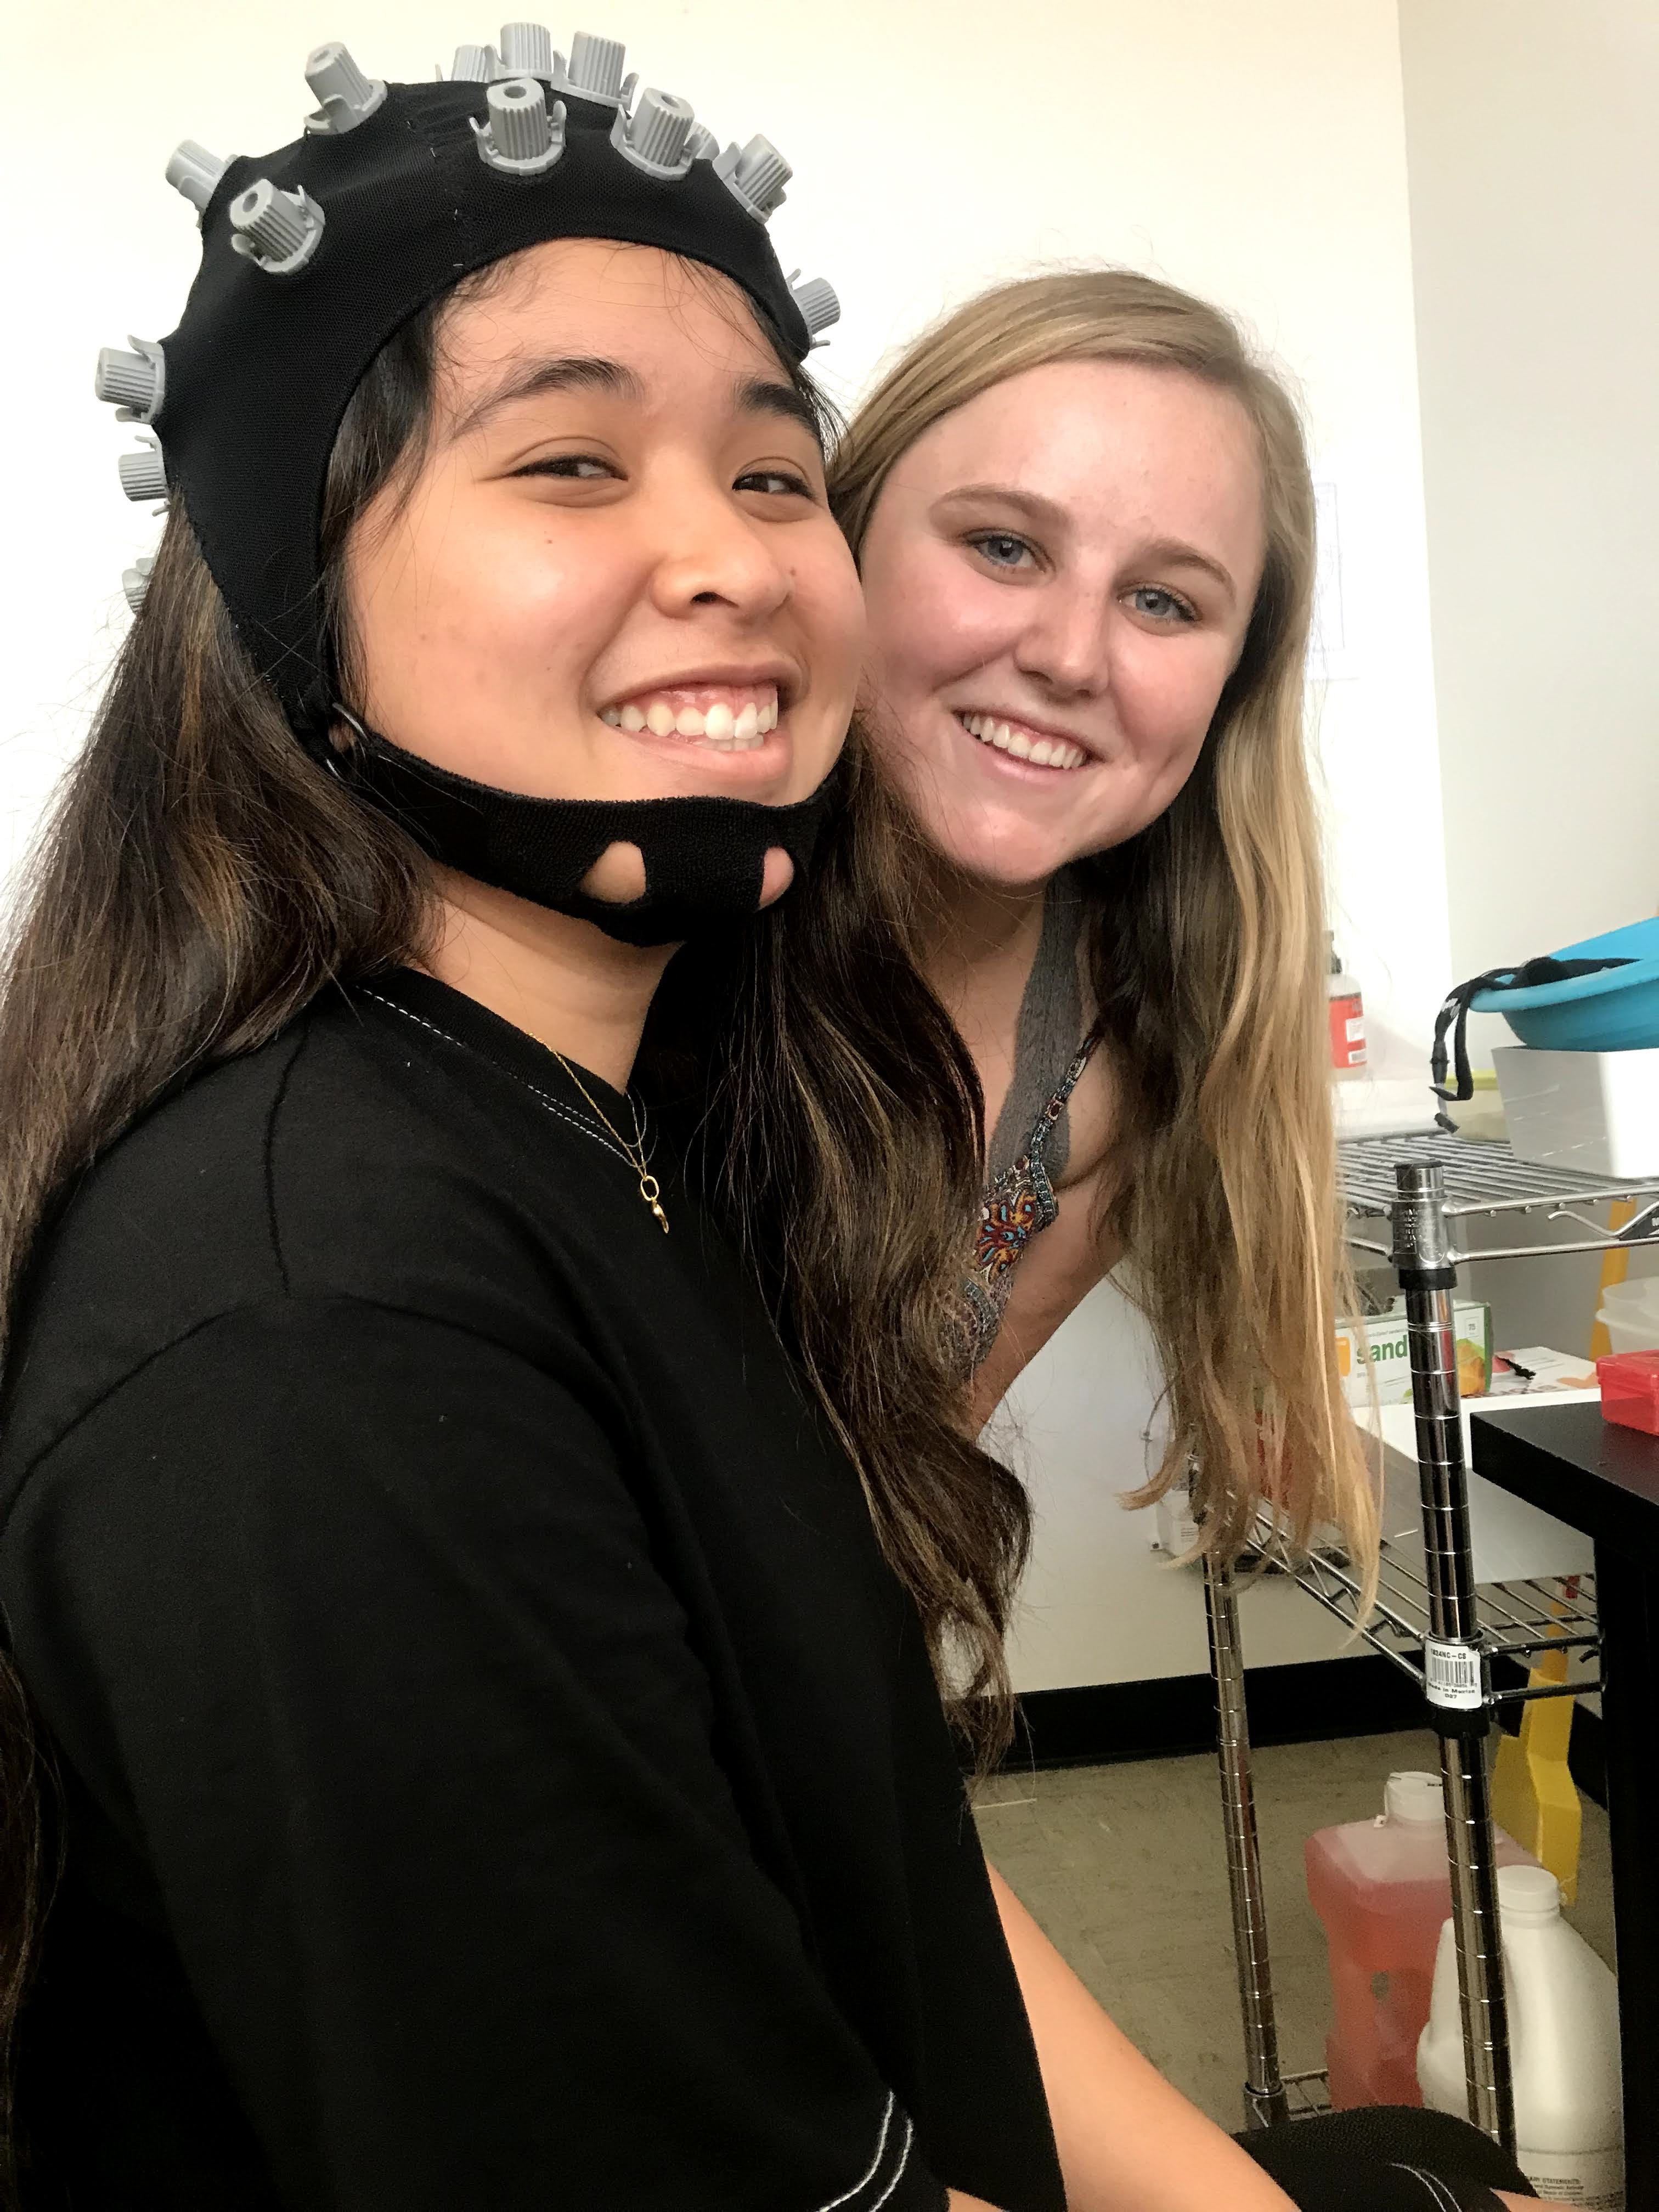 Former UCLA undergrads Annika Daug ('20, B.S., Psychobiology) and Riley Fox ('21, B.A., Psychology) took part in a study on student attention, led by UCLA Associate Professor of Education Jennie Grammer. Courtesy of Jennie Grammer